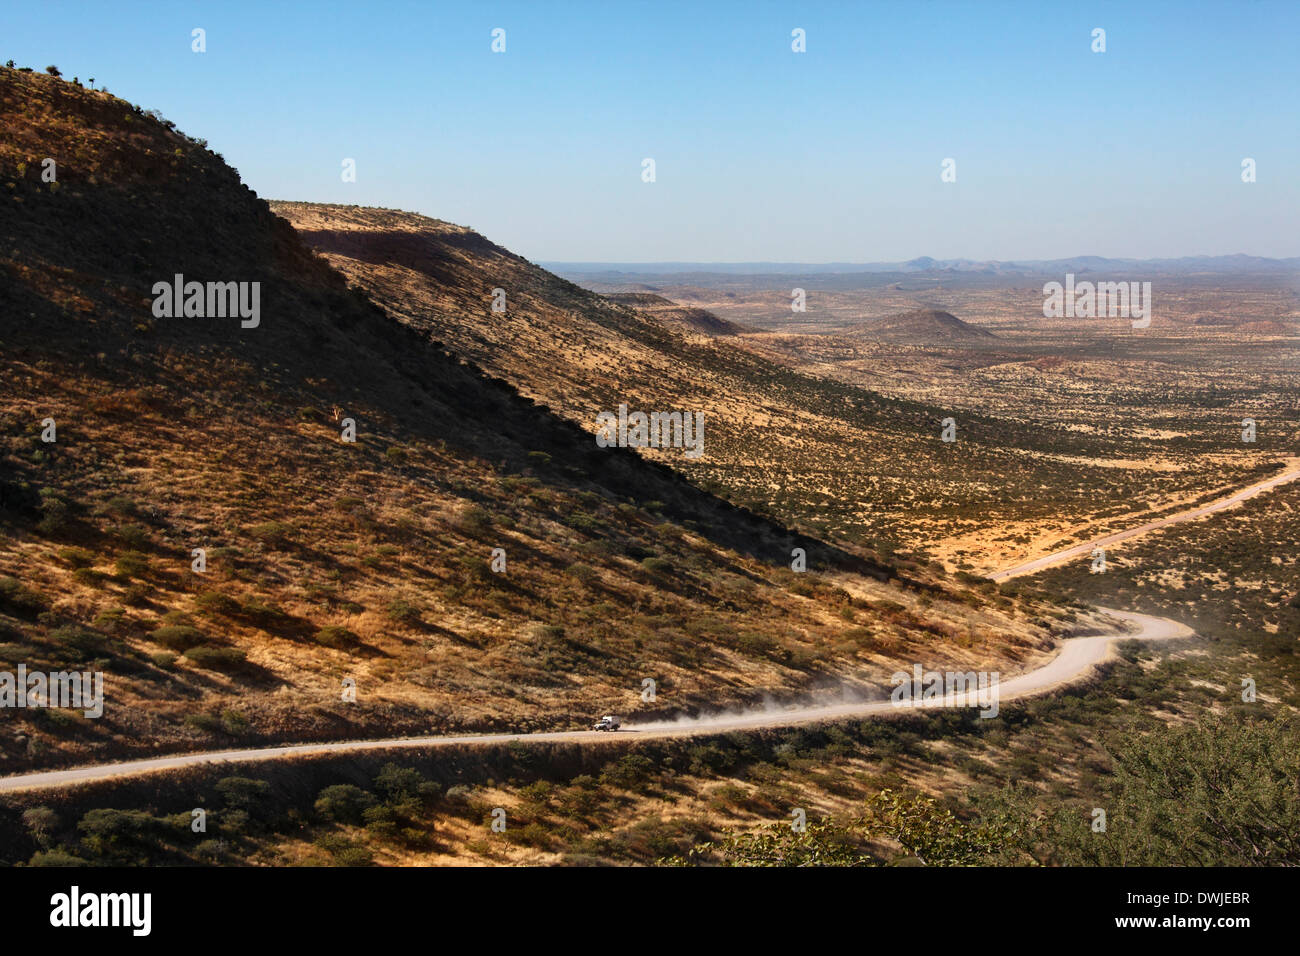 Vehicle on a remote desert road through the Grootberg Pass in the semi-desert of Damaraland in Namibia. - Stock Image